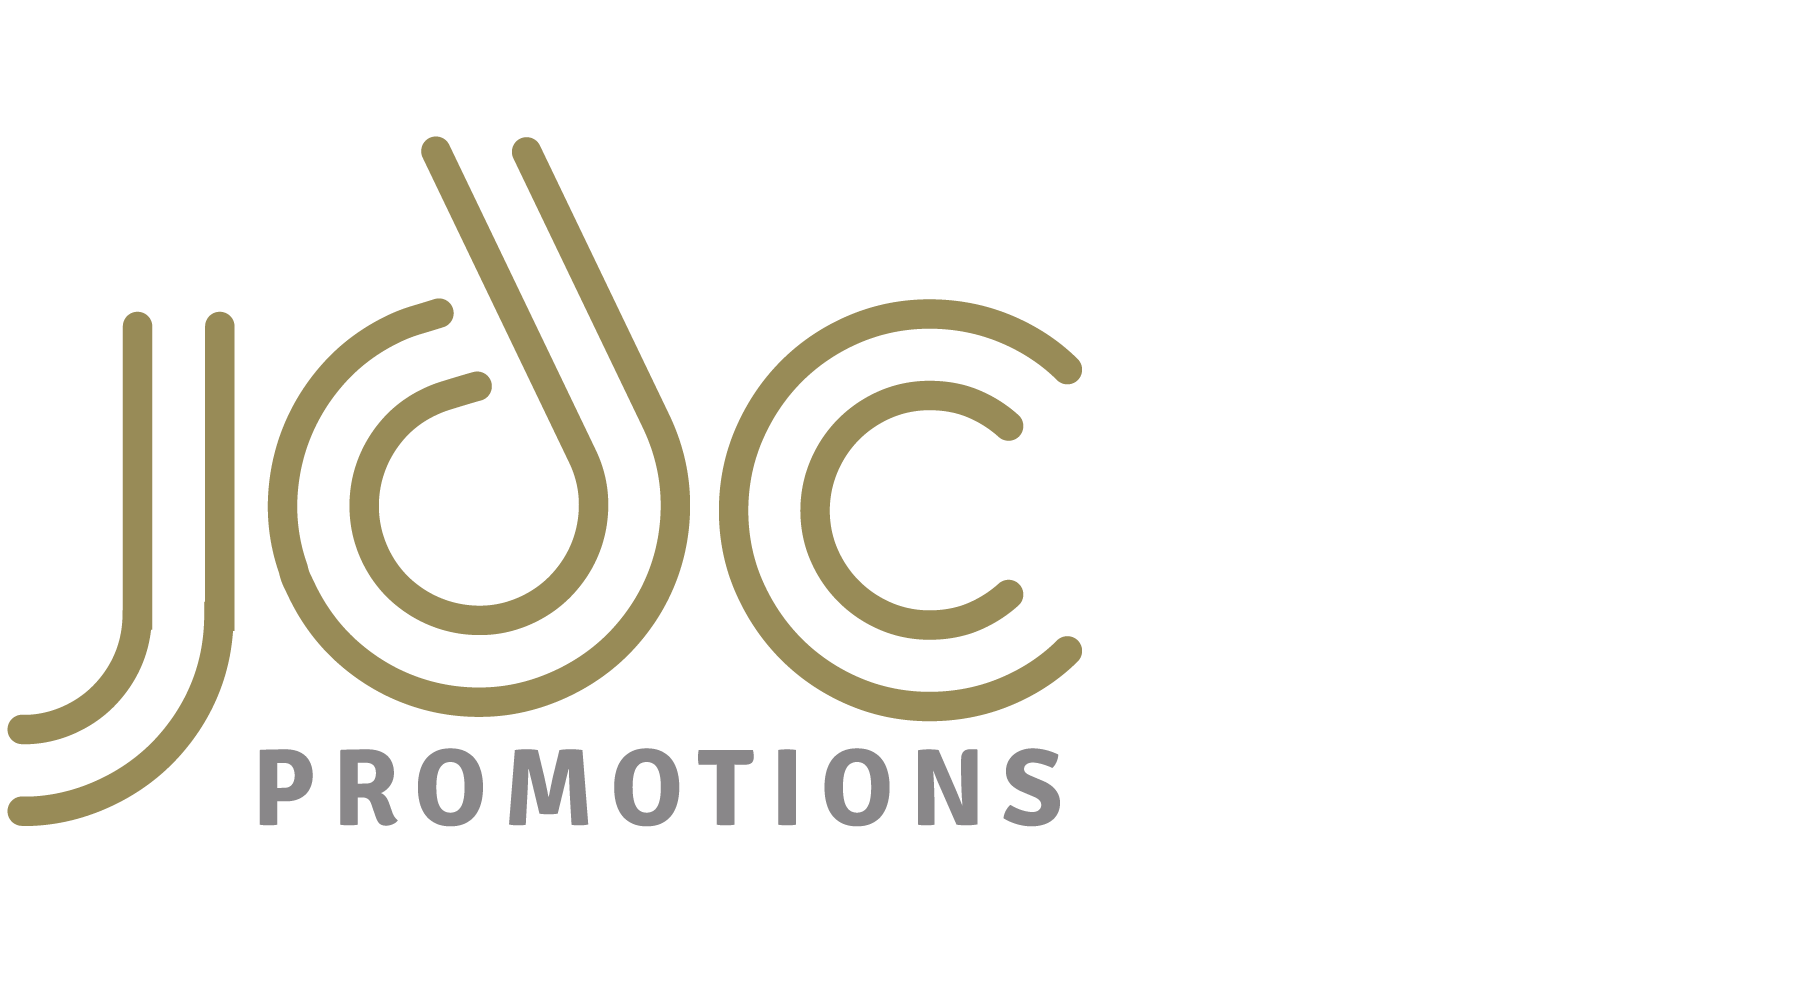 Motor racing corporate hospitality from JDC Promotions